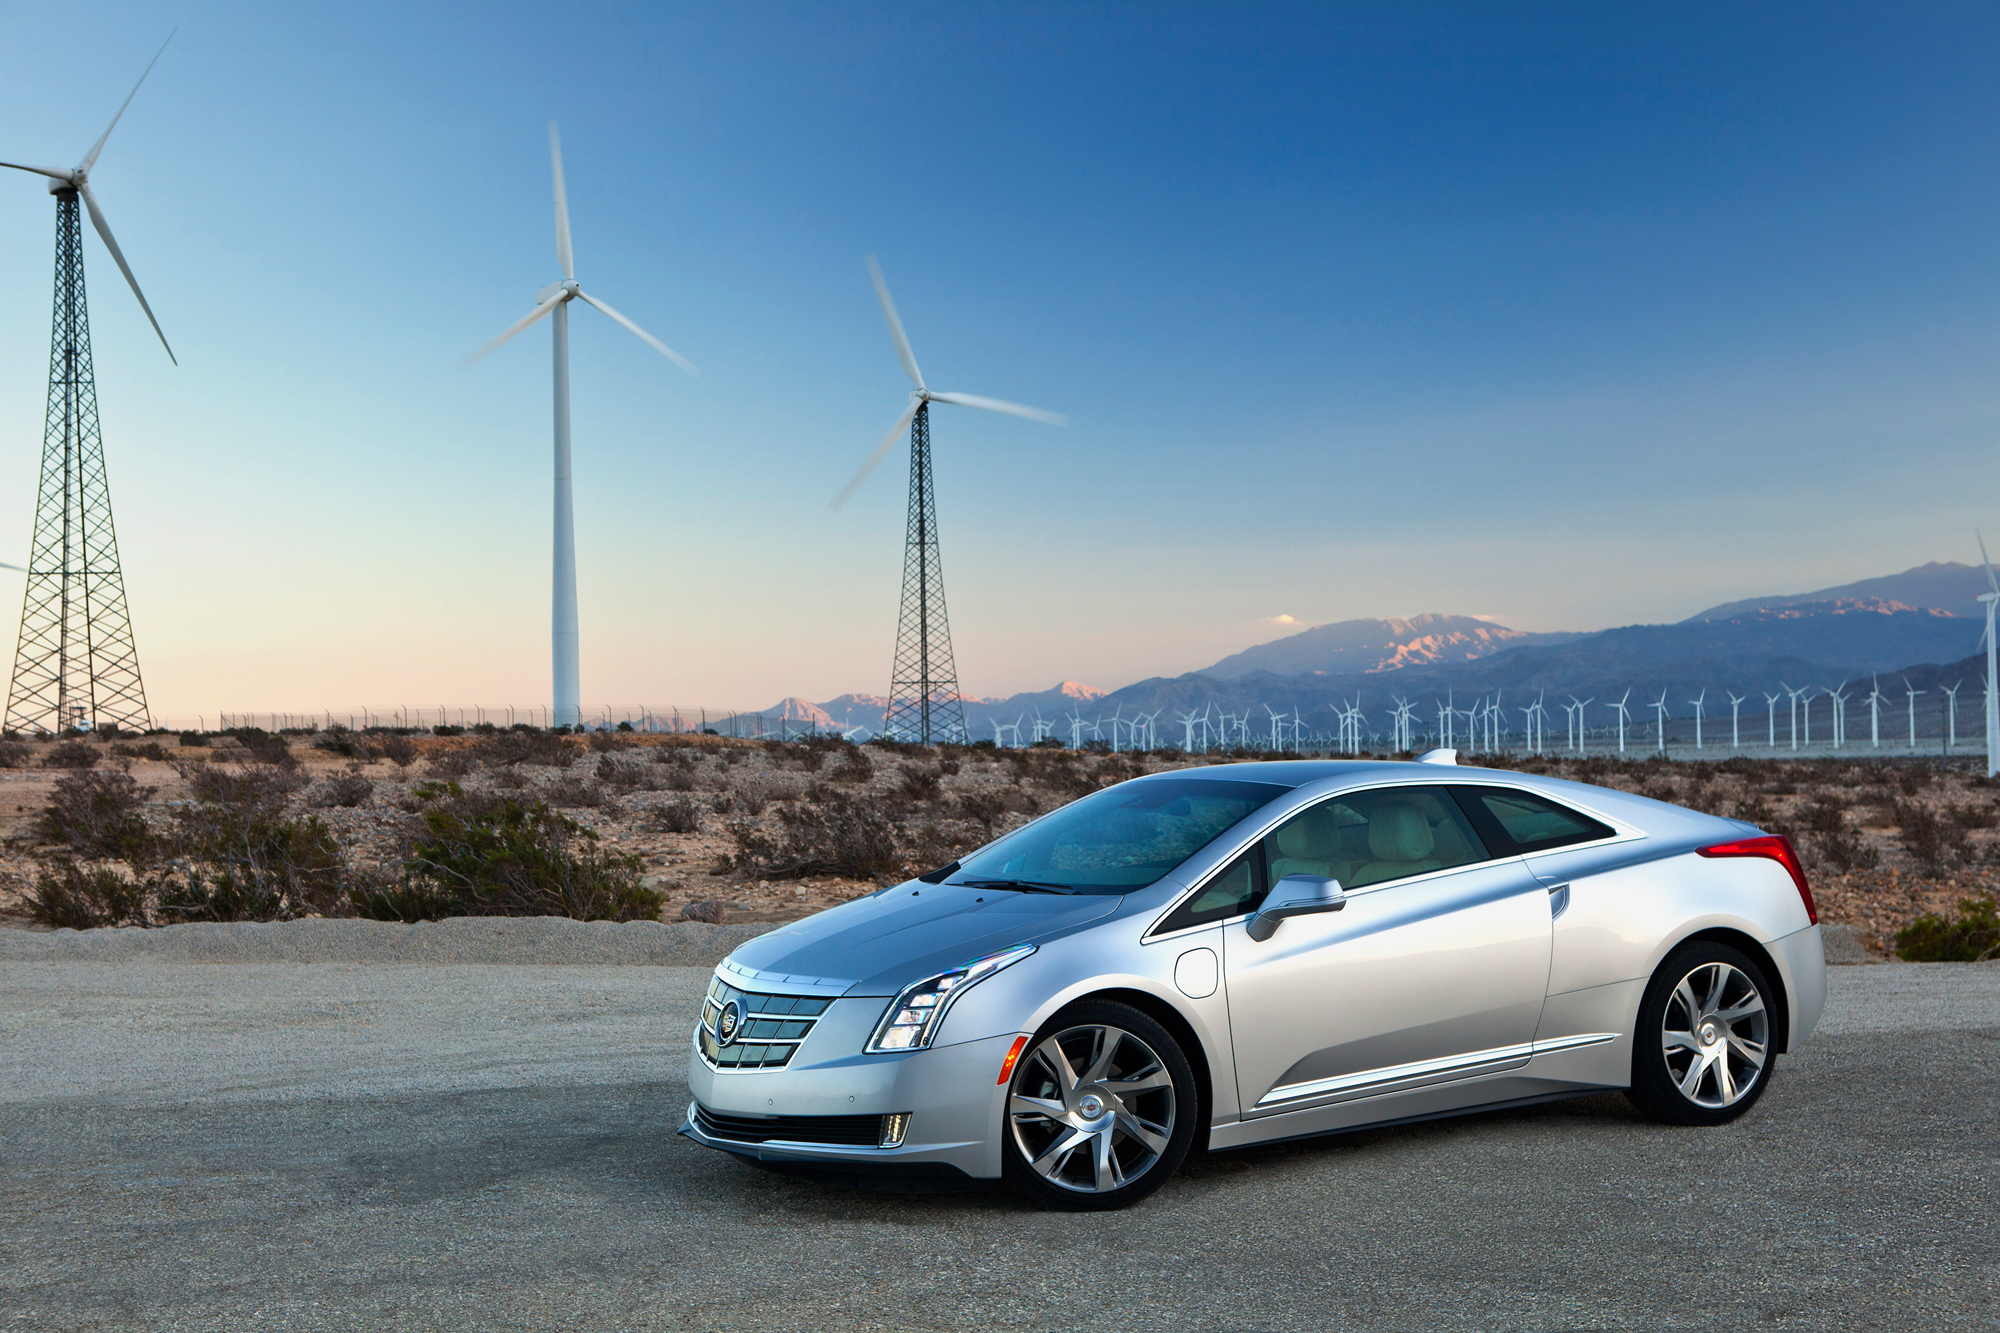 2014 cadillac elr first drive could it work in the middle east motoring middle east car news. Black Bedroom Furniture Sets. Home Design Ideas